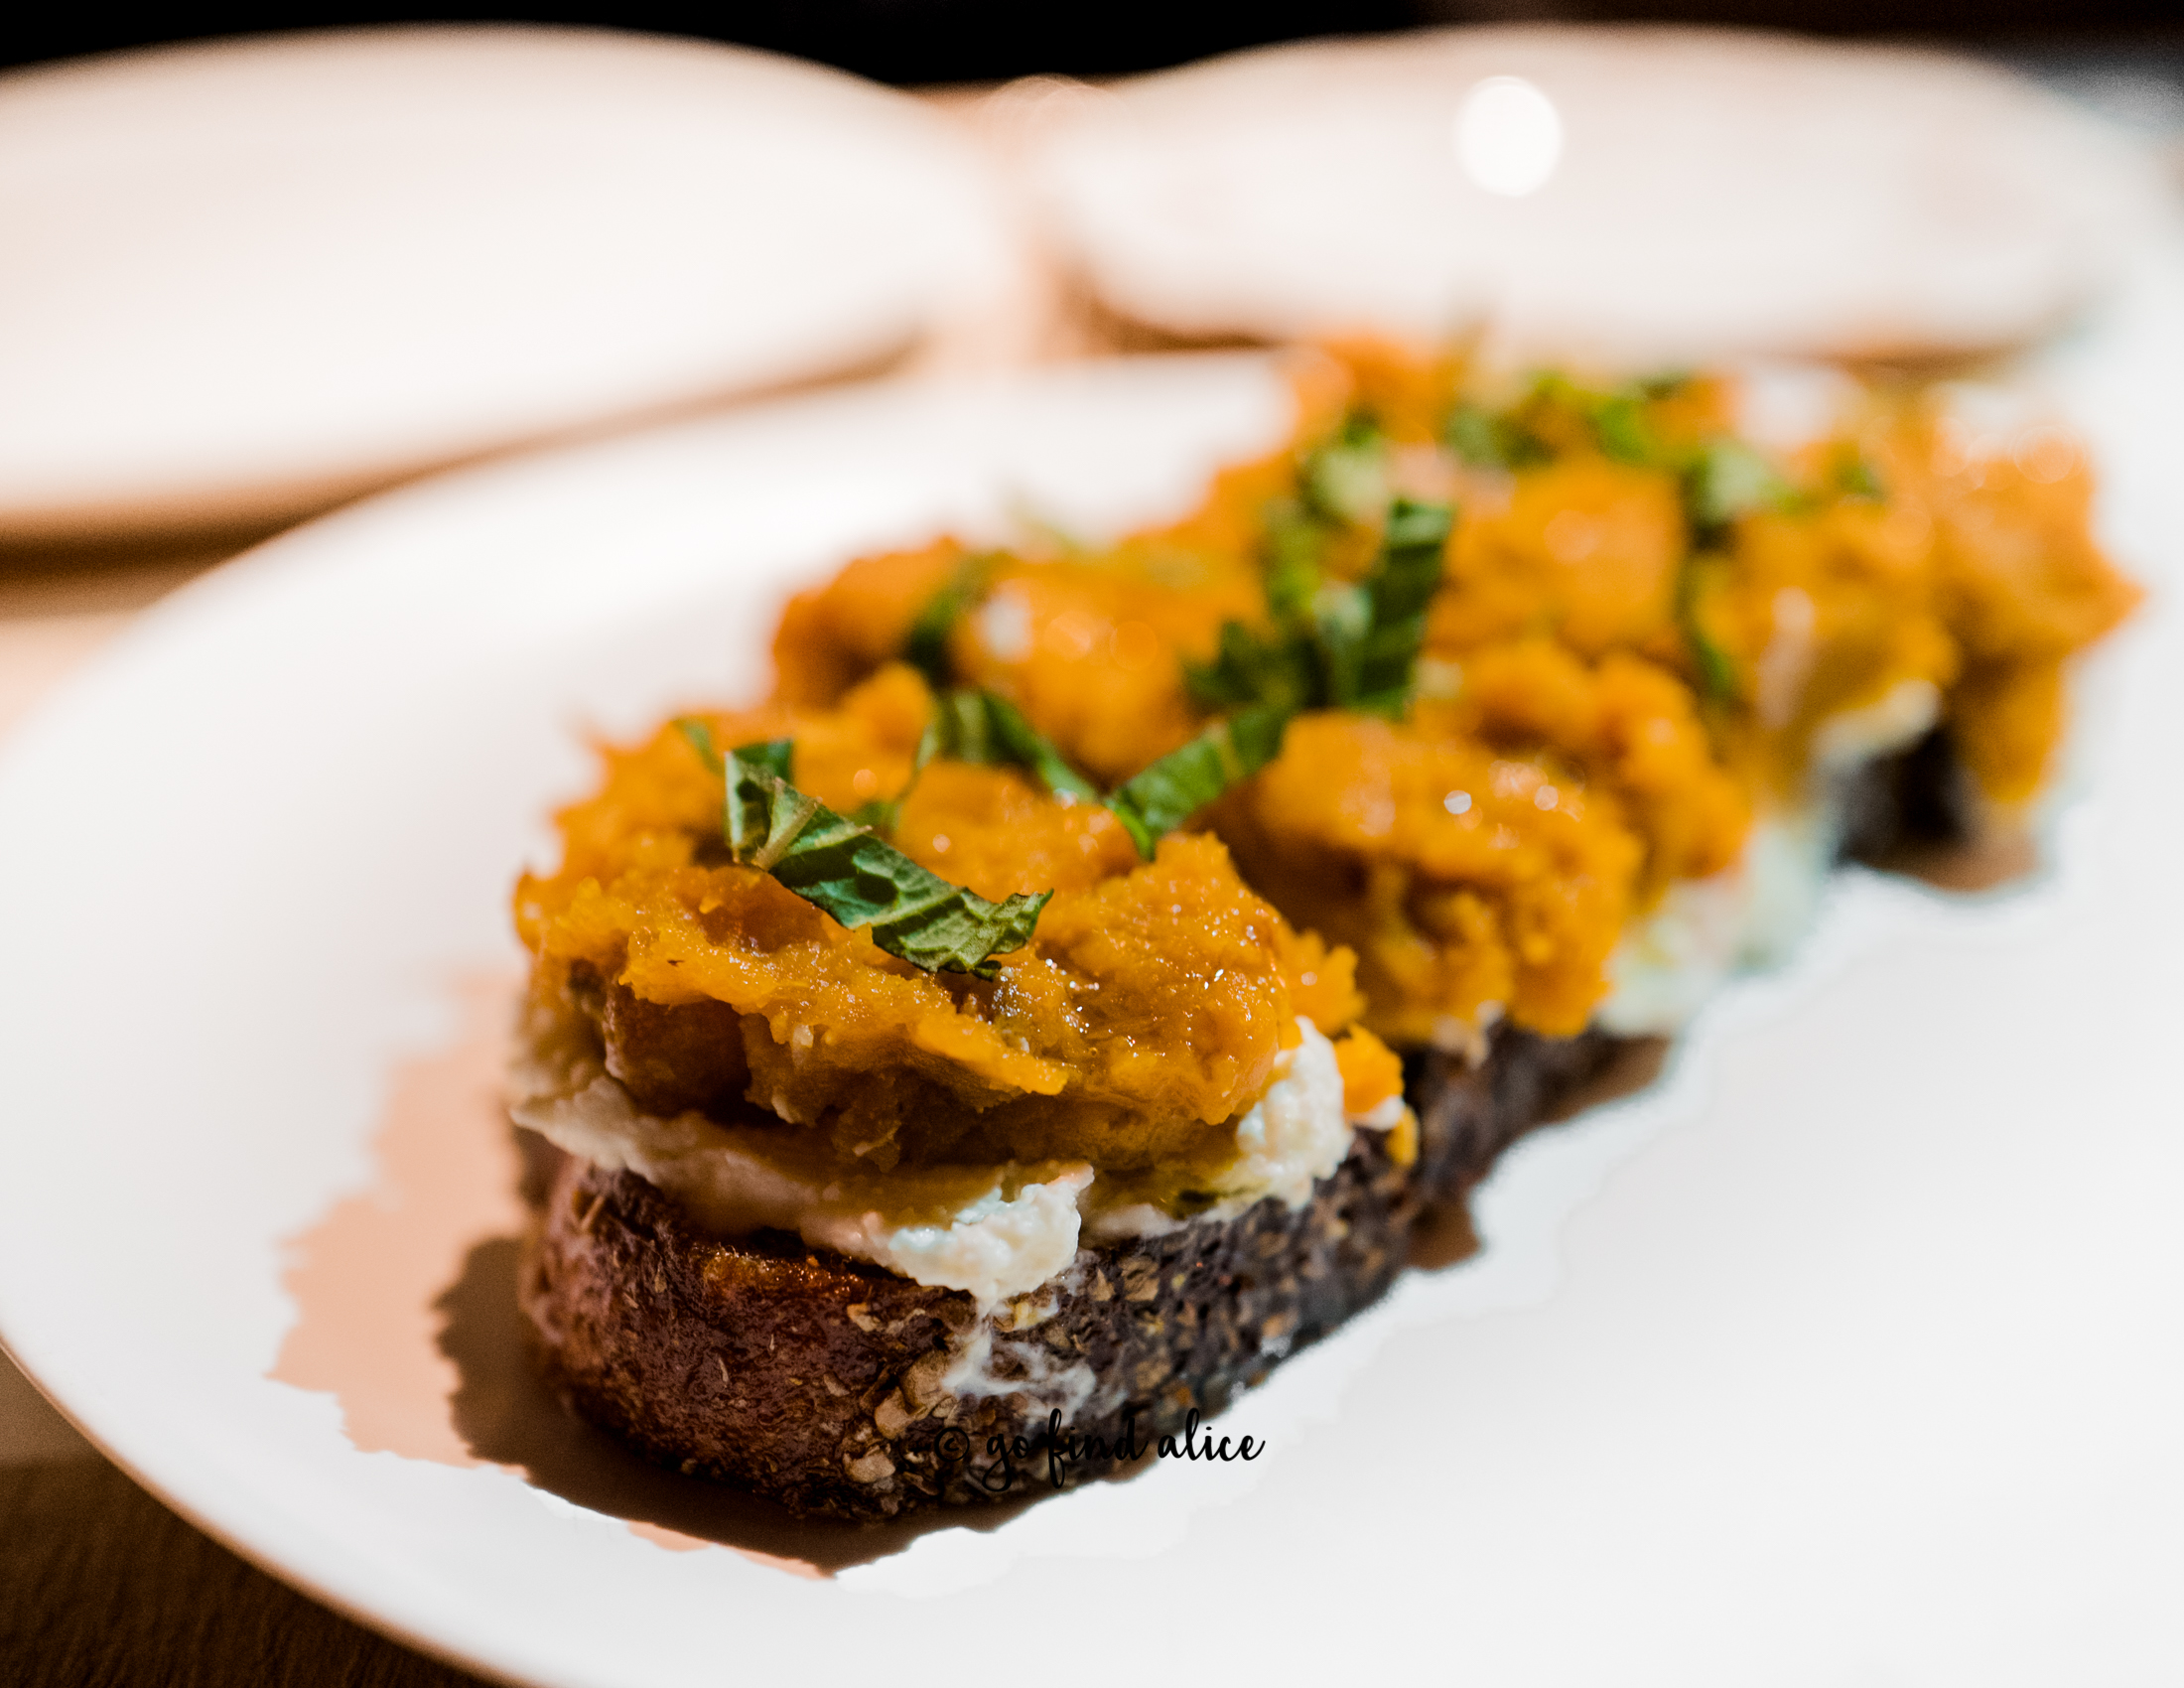 ROASTED KABOCHA SQUASH TOAST, FRENCH RICOTTA CHEESE, APPLE CIDER VINEGAR ($15)   This was a seasonal special and was my FAVORITE dish of the night! Savory and sweet, this was the perfect embodiment of Autumn. A must order!